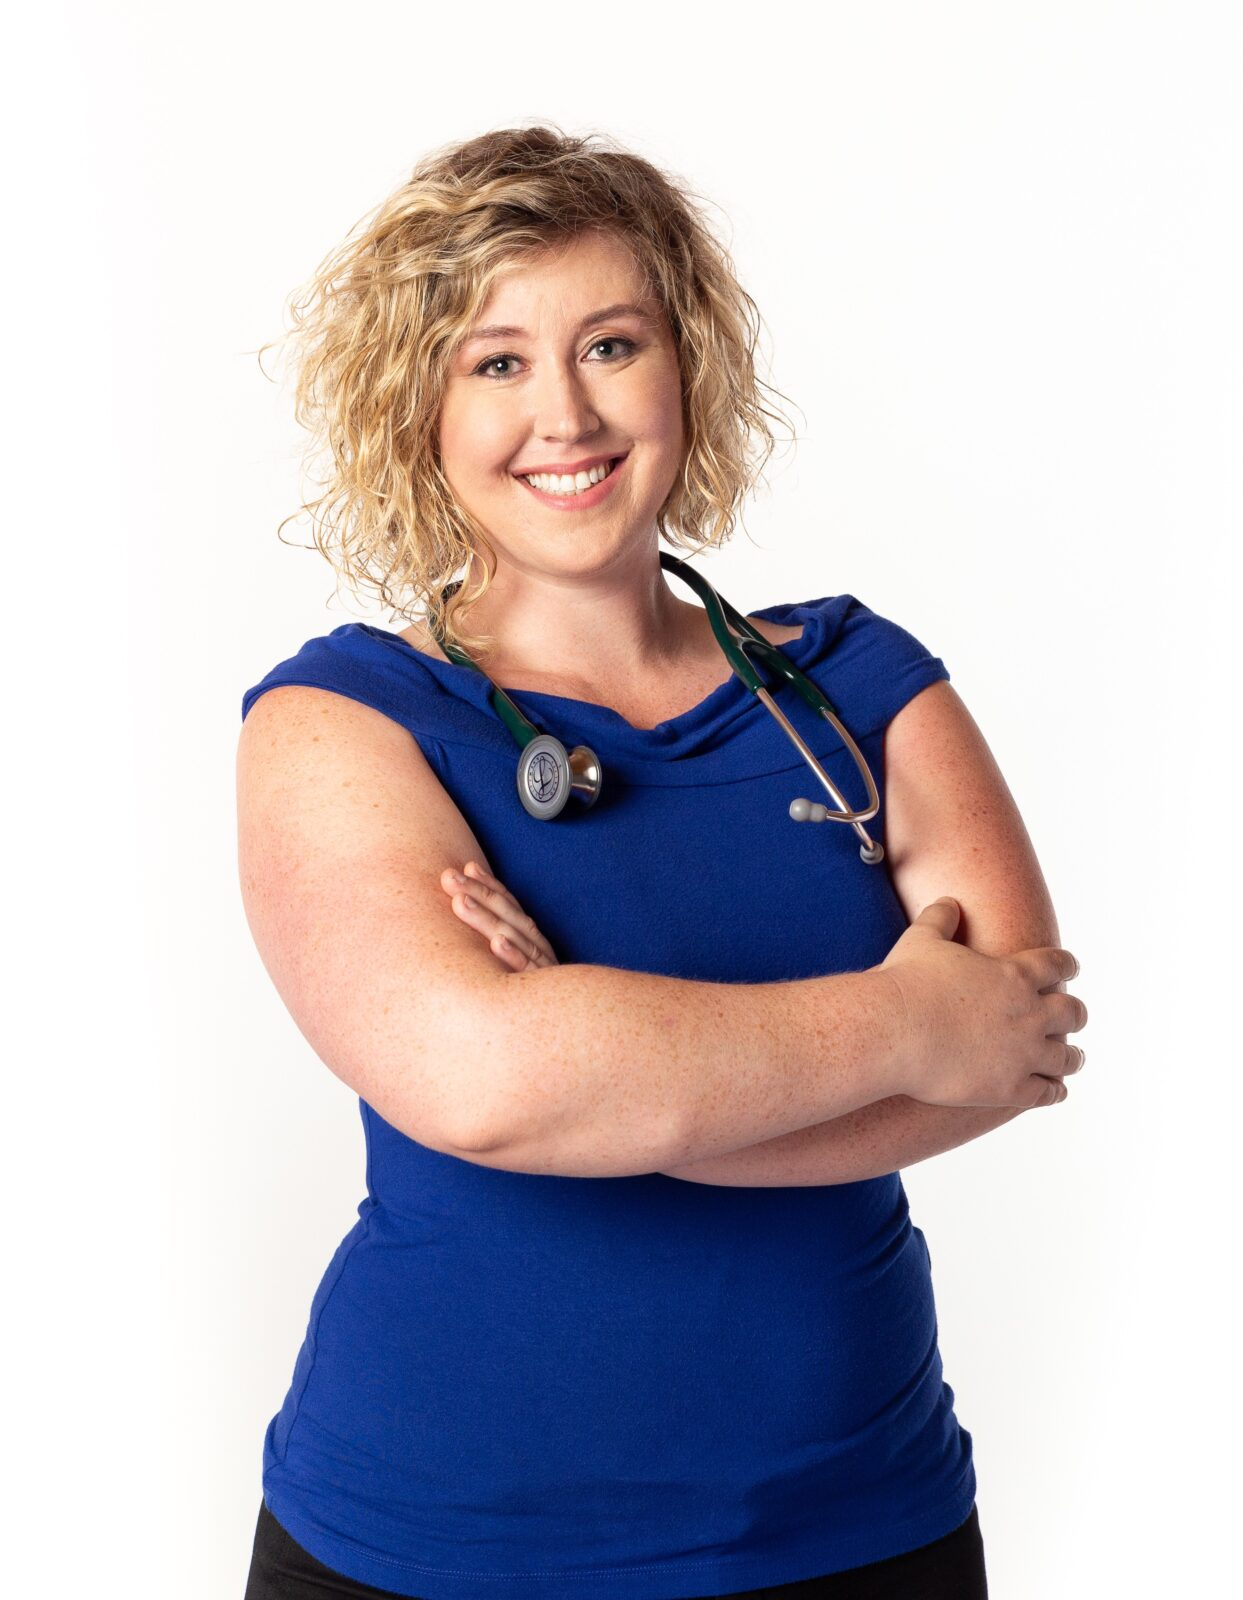 Dr. Heather van Der Geest, Naturopathic Doctor, Naturopath, Sports Medicine, Injections